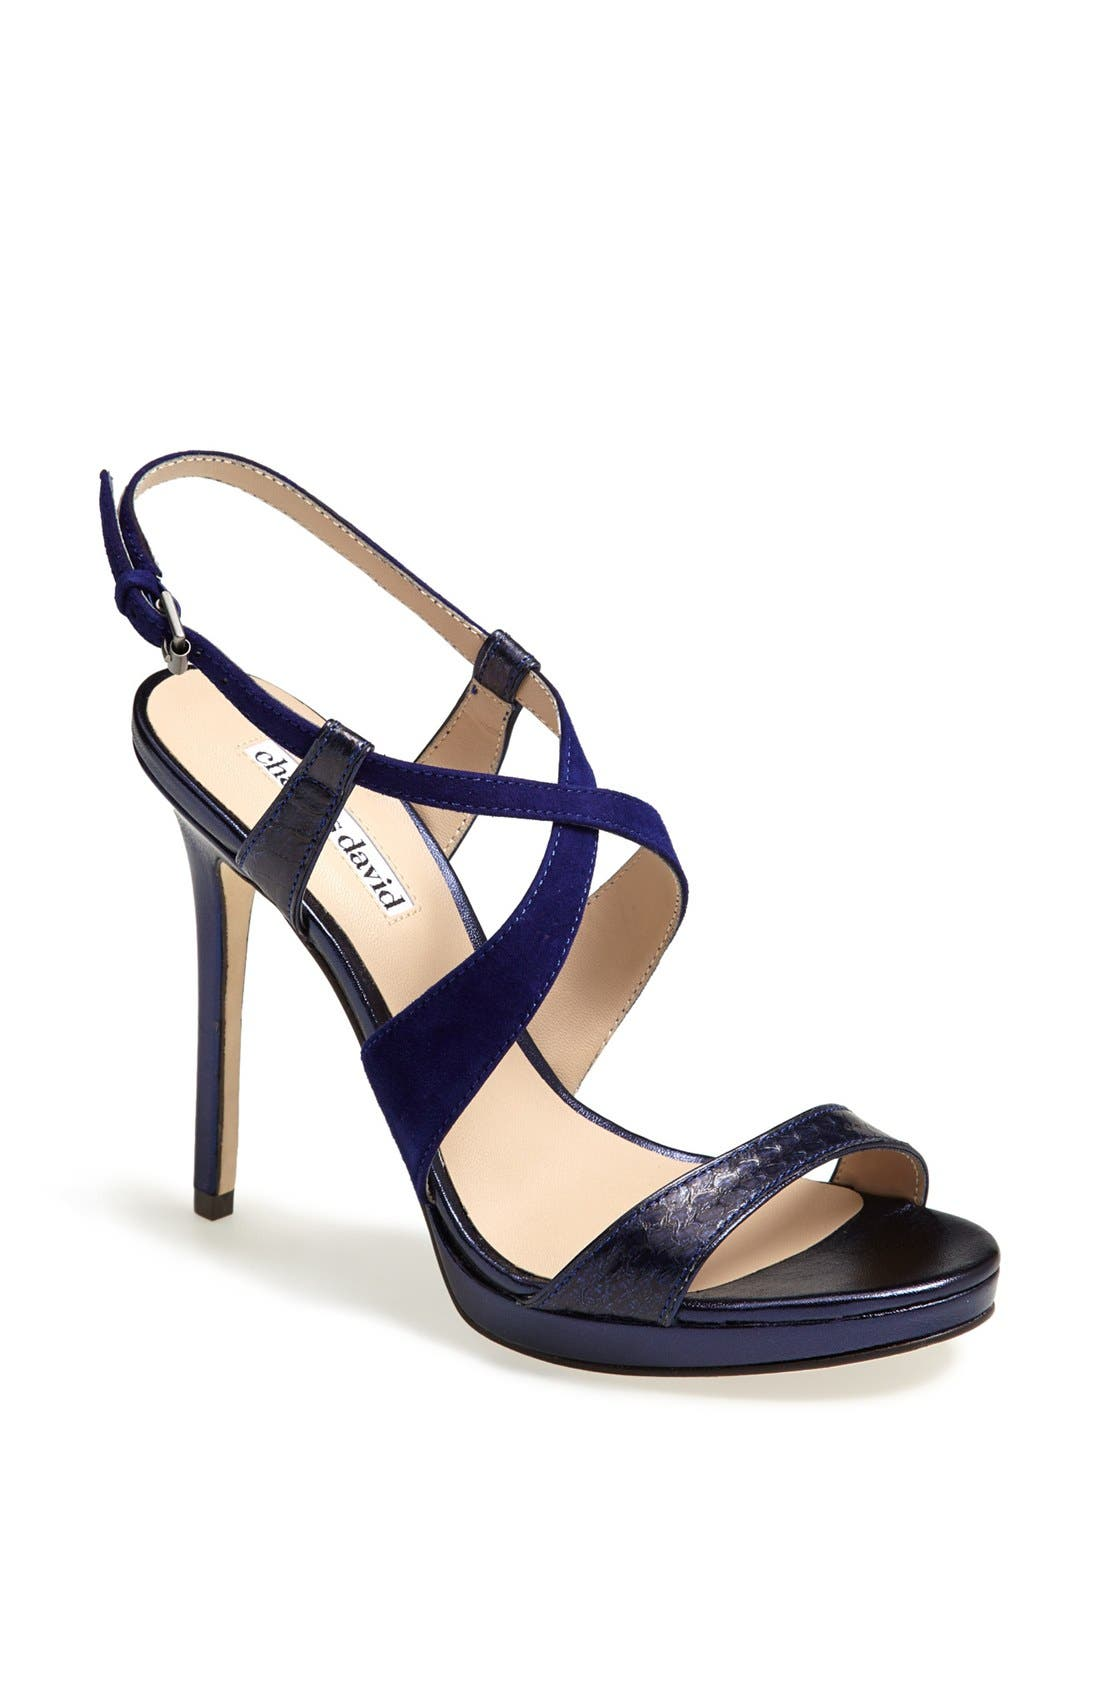 Alternate Image 1 Selected - Charles David 'Hermosa' Platform Sandal